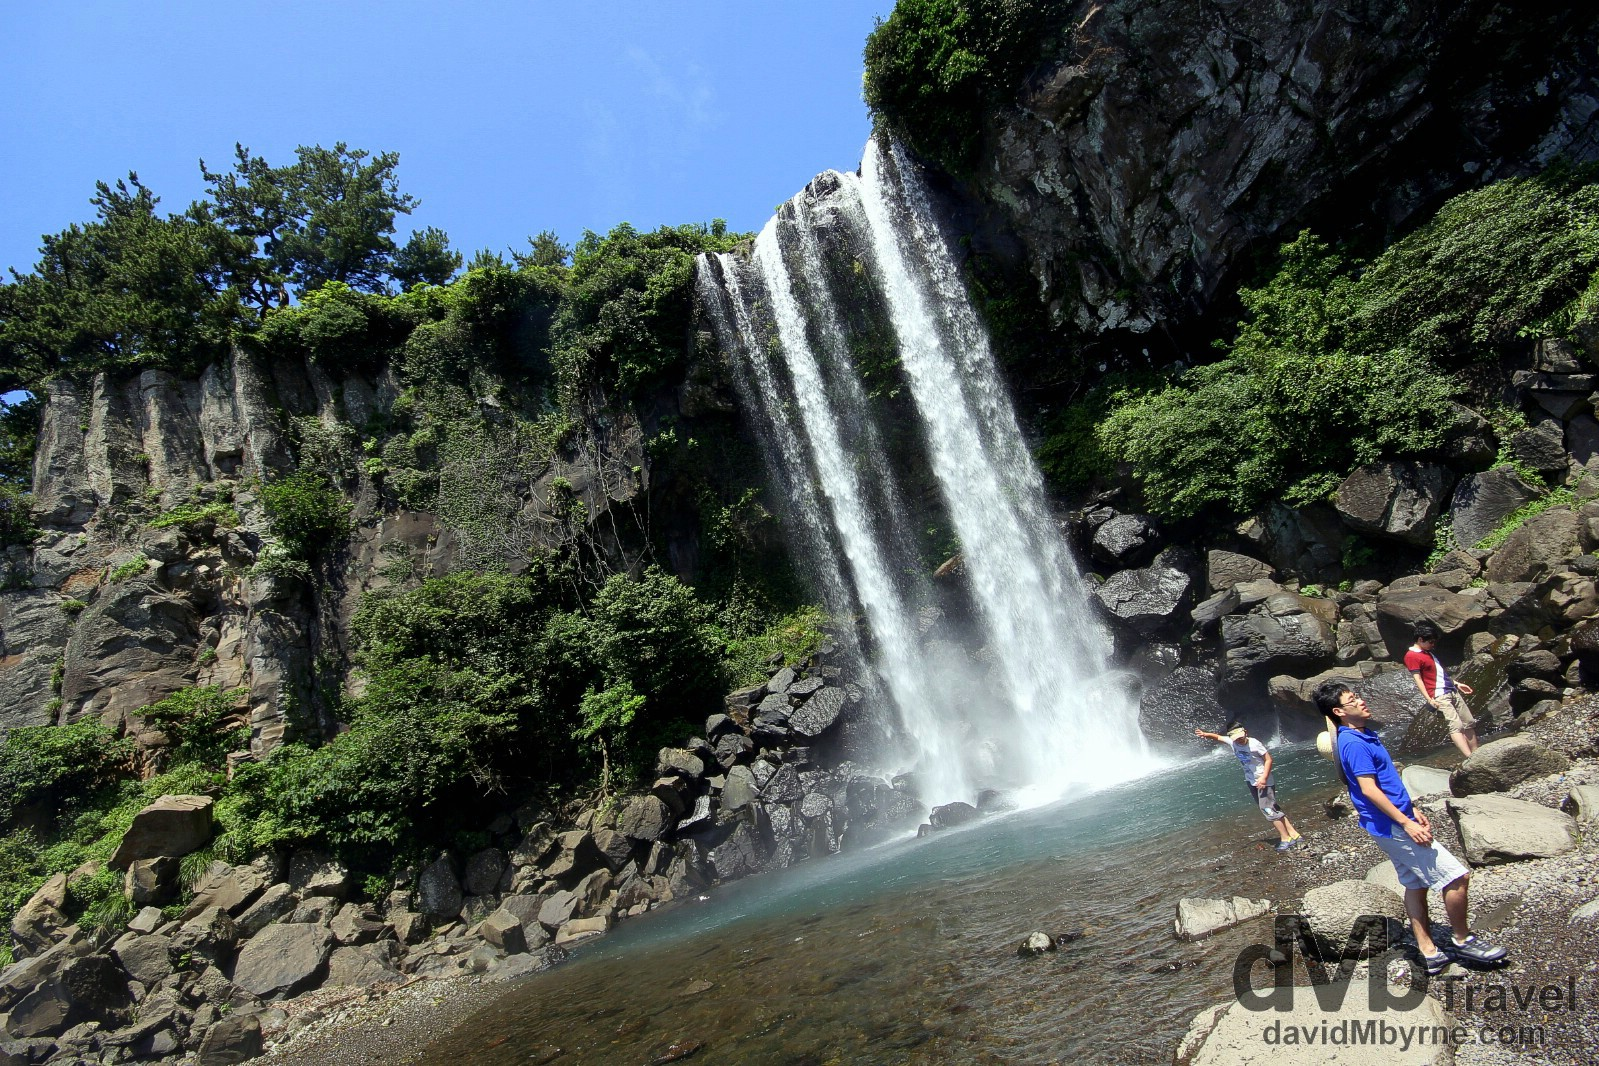 Jeongbang Waterfall, the only waterfall in Asia to fall directly into the ocean. Jeju Island, South Korea. July 16th 2011